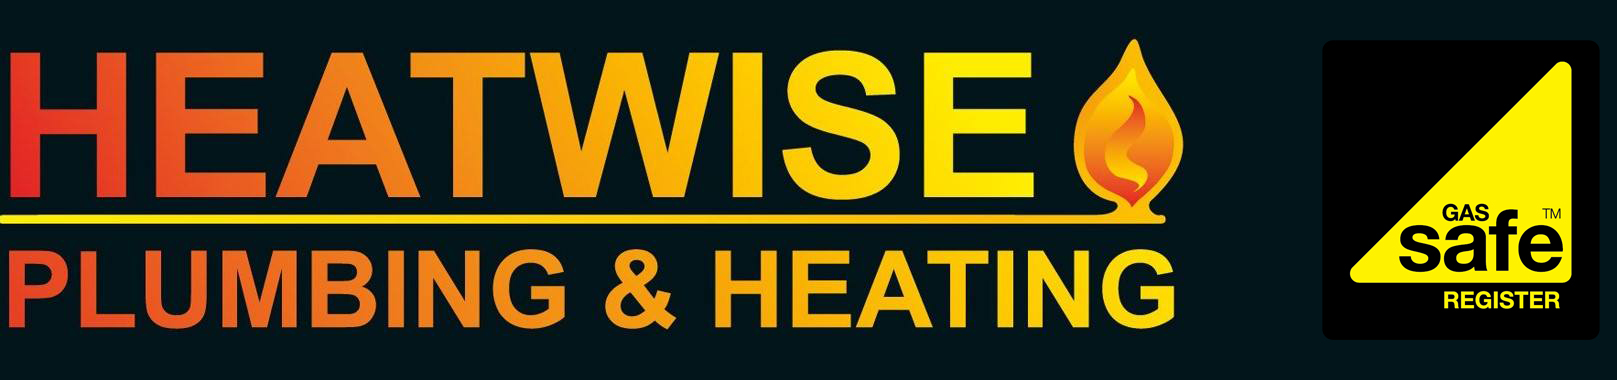 Heatwise Plumbing and Heating